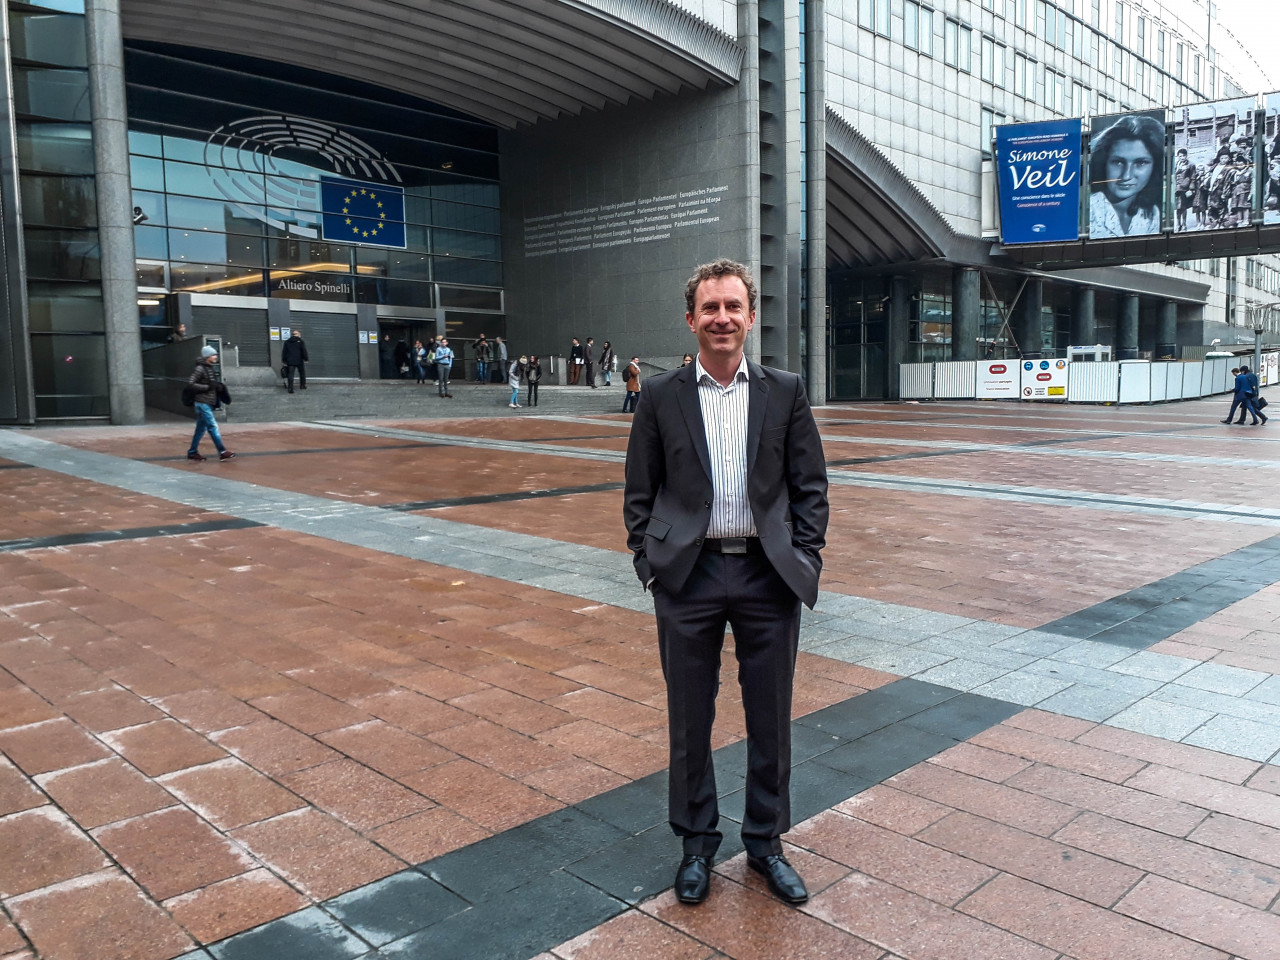 Stefan presenting at the European Parliament. Brussels, November 2017.